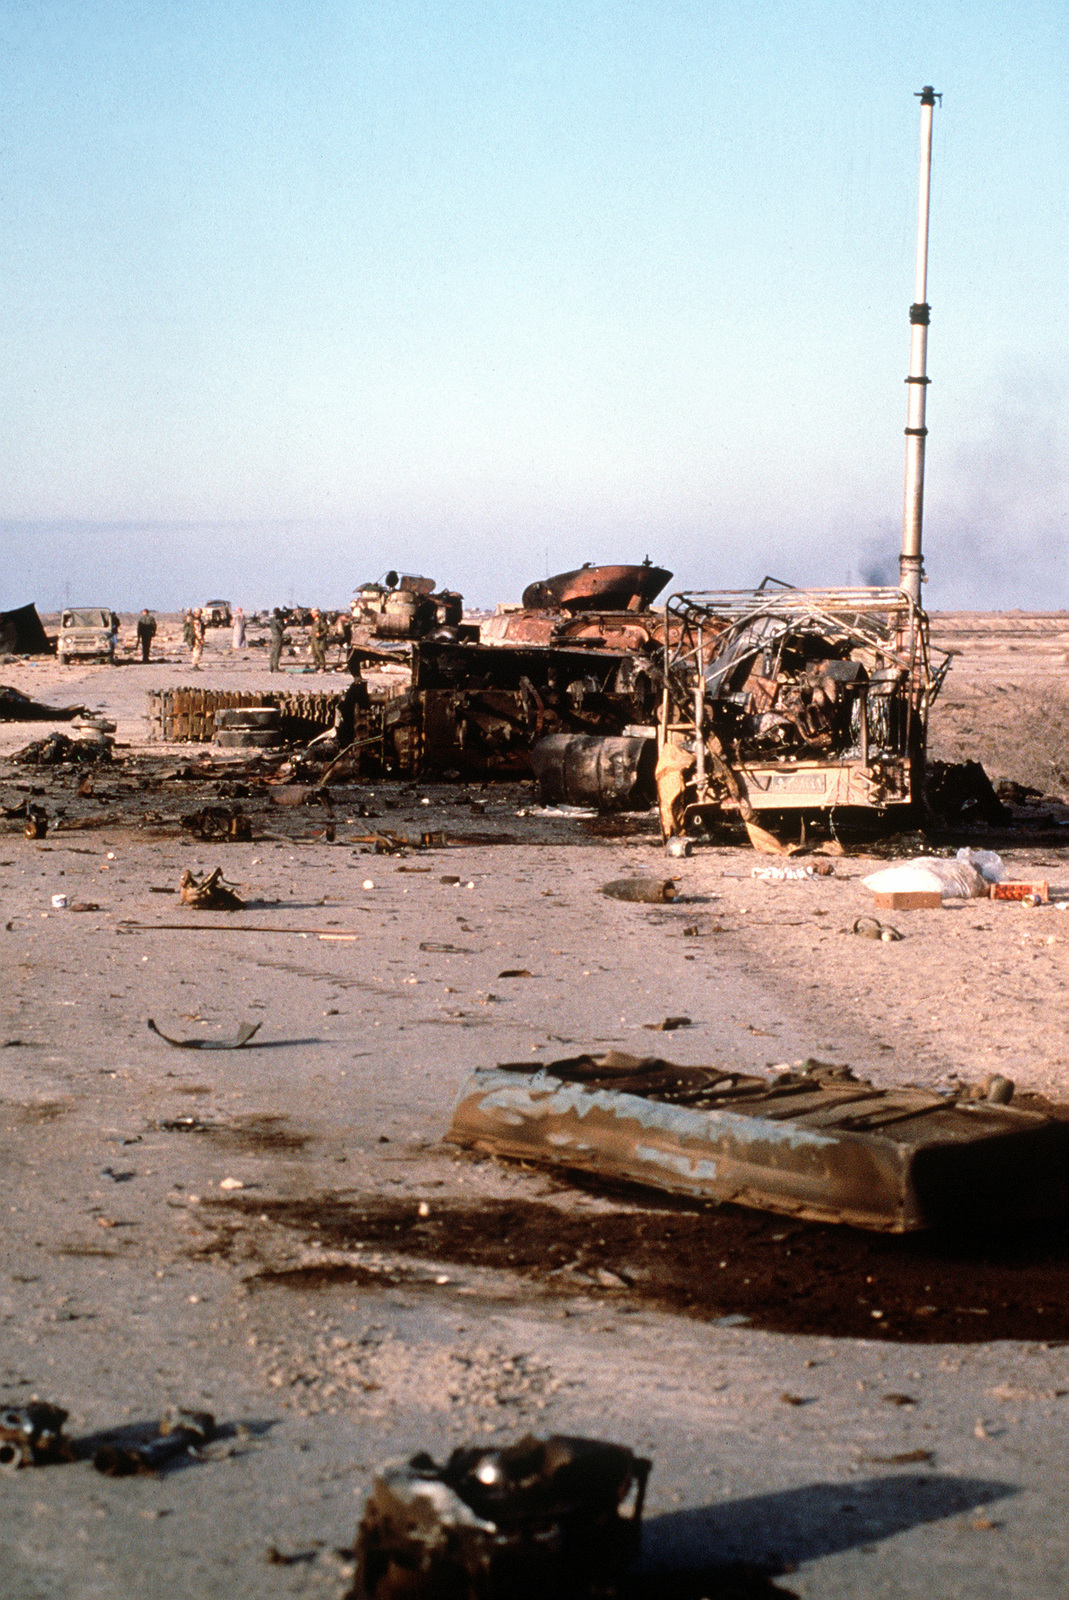 Demolished Iraqi equipment lies on a roadway in the